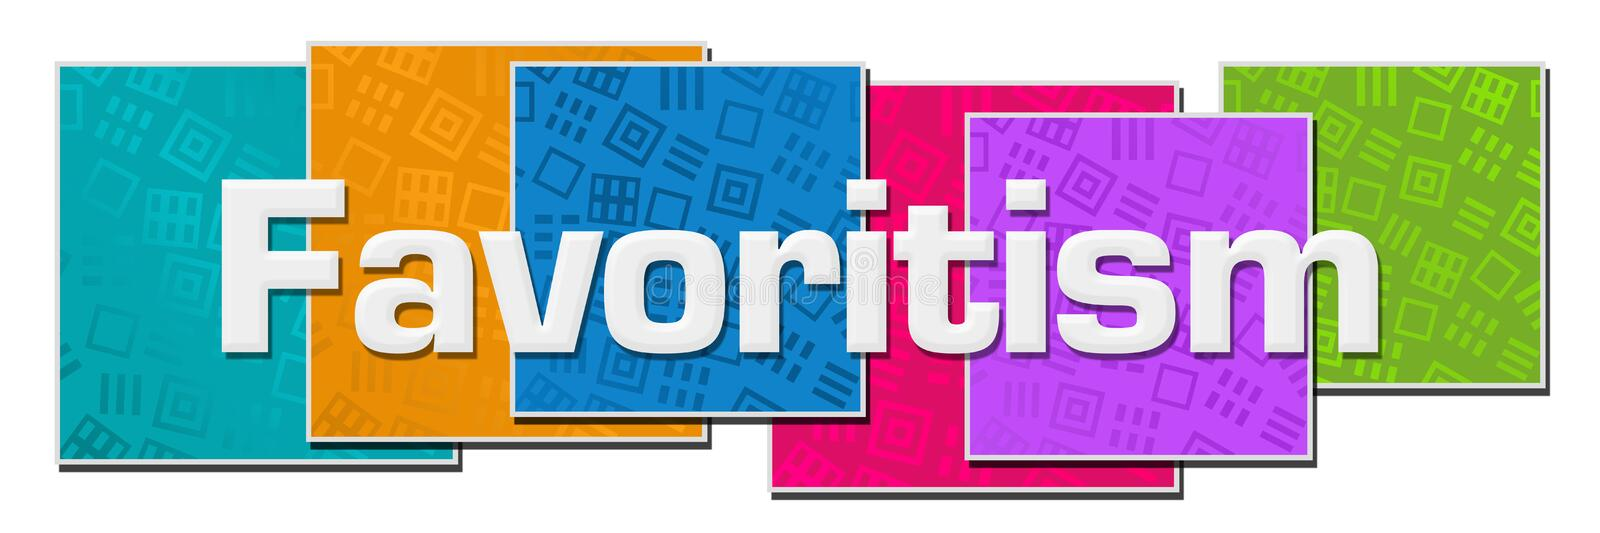 Favoritism Colorful Texture Blocks. Favoritism text over colorful background vector illustration